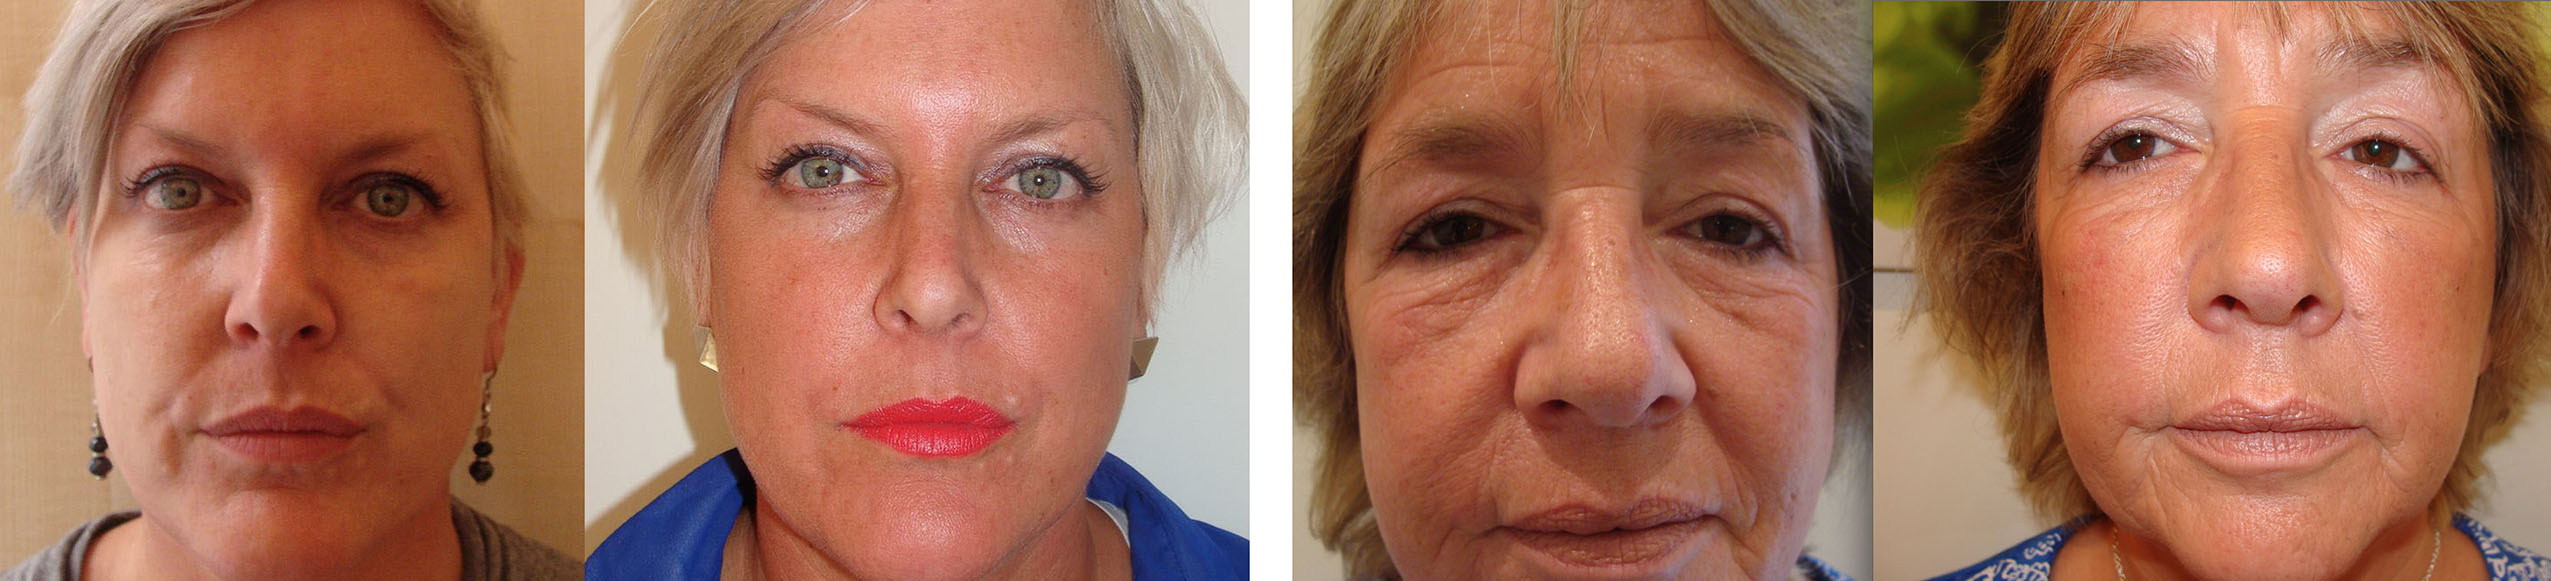 Dermal Filler Treatment Examples